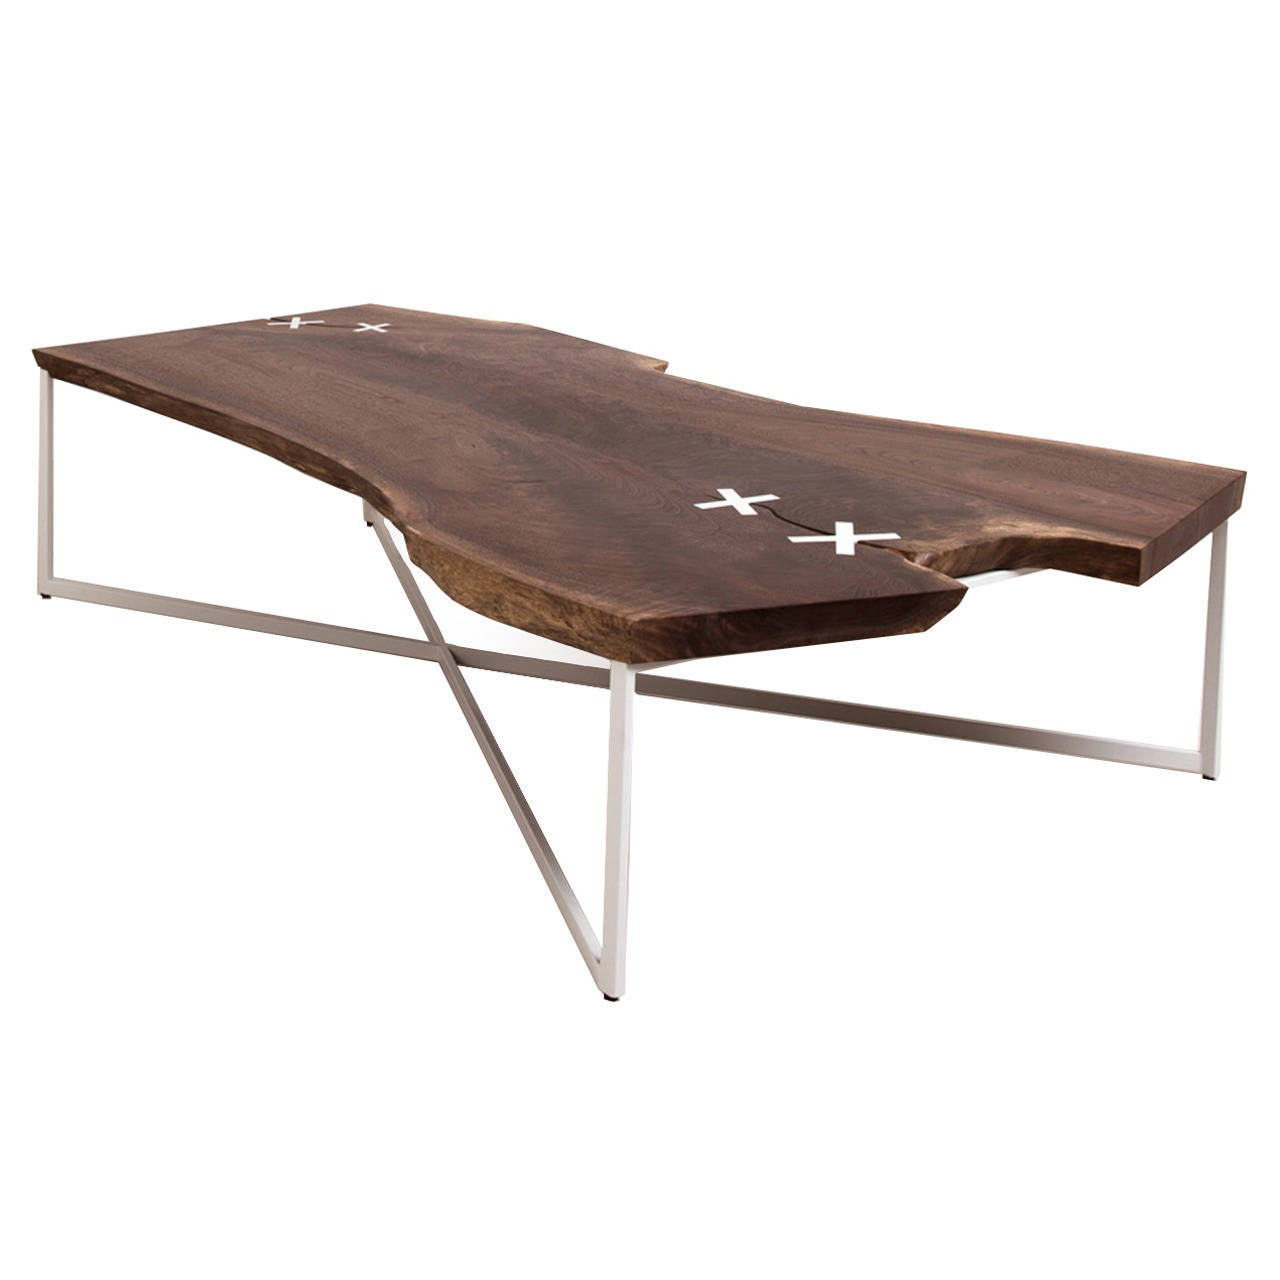 Stitch Coffee Table By Uhuru Design Claro Walnut Powder Coated Steel For Sale At 1stdibs